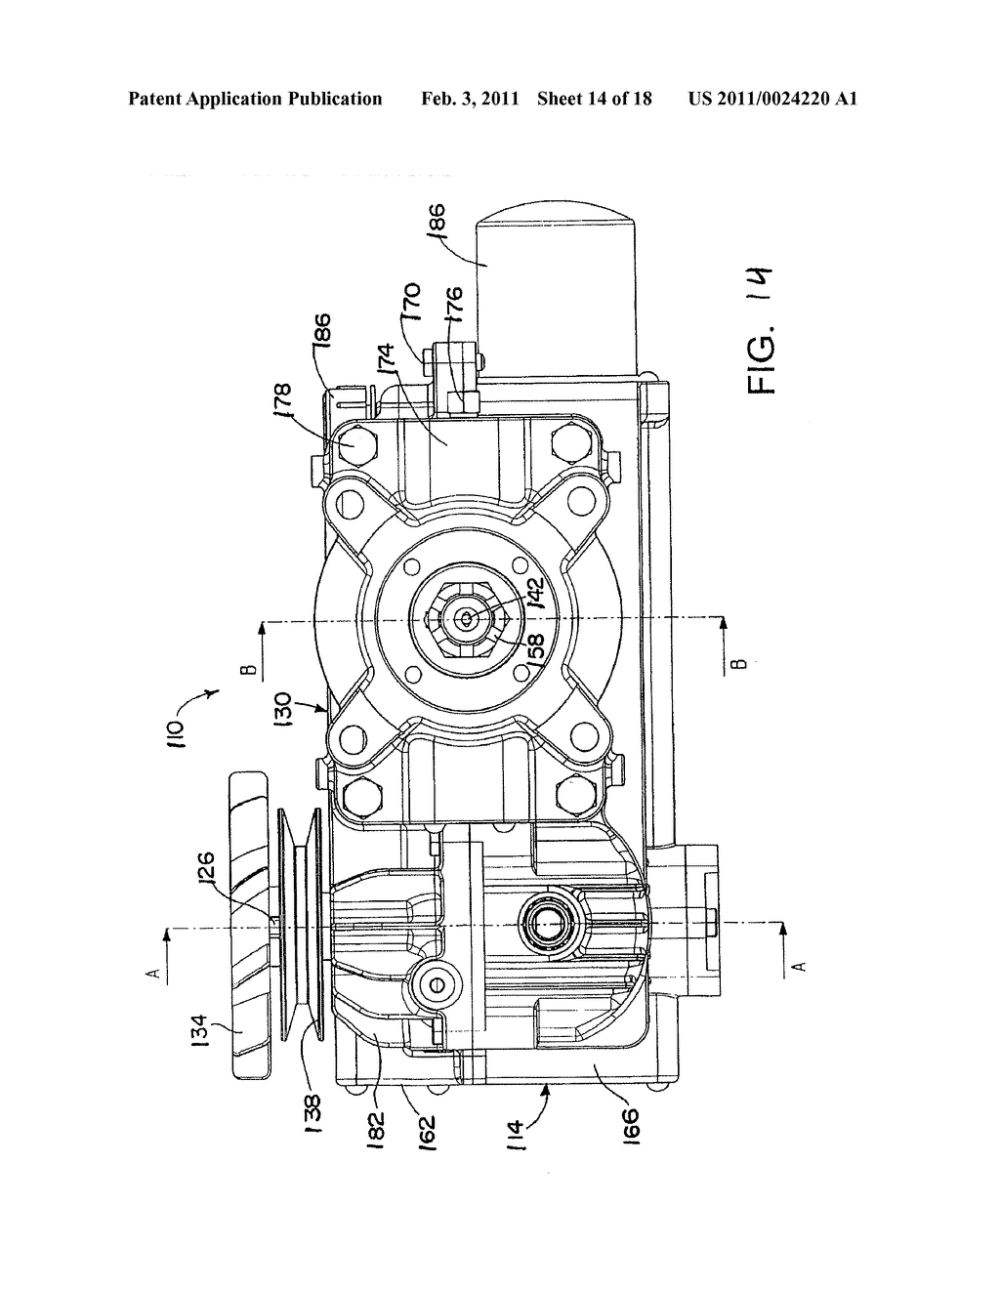 medium resolution of mounting of hydrostatic transmission for riding lawn mower diagram schematic and image 15